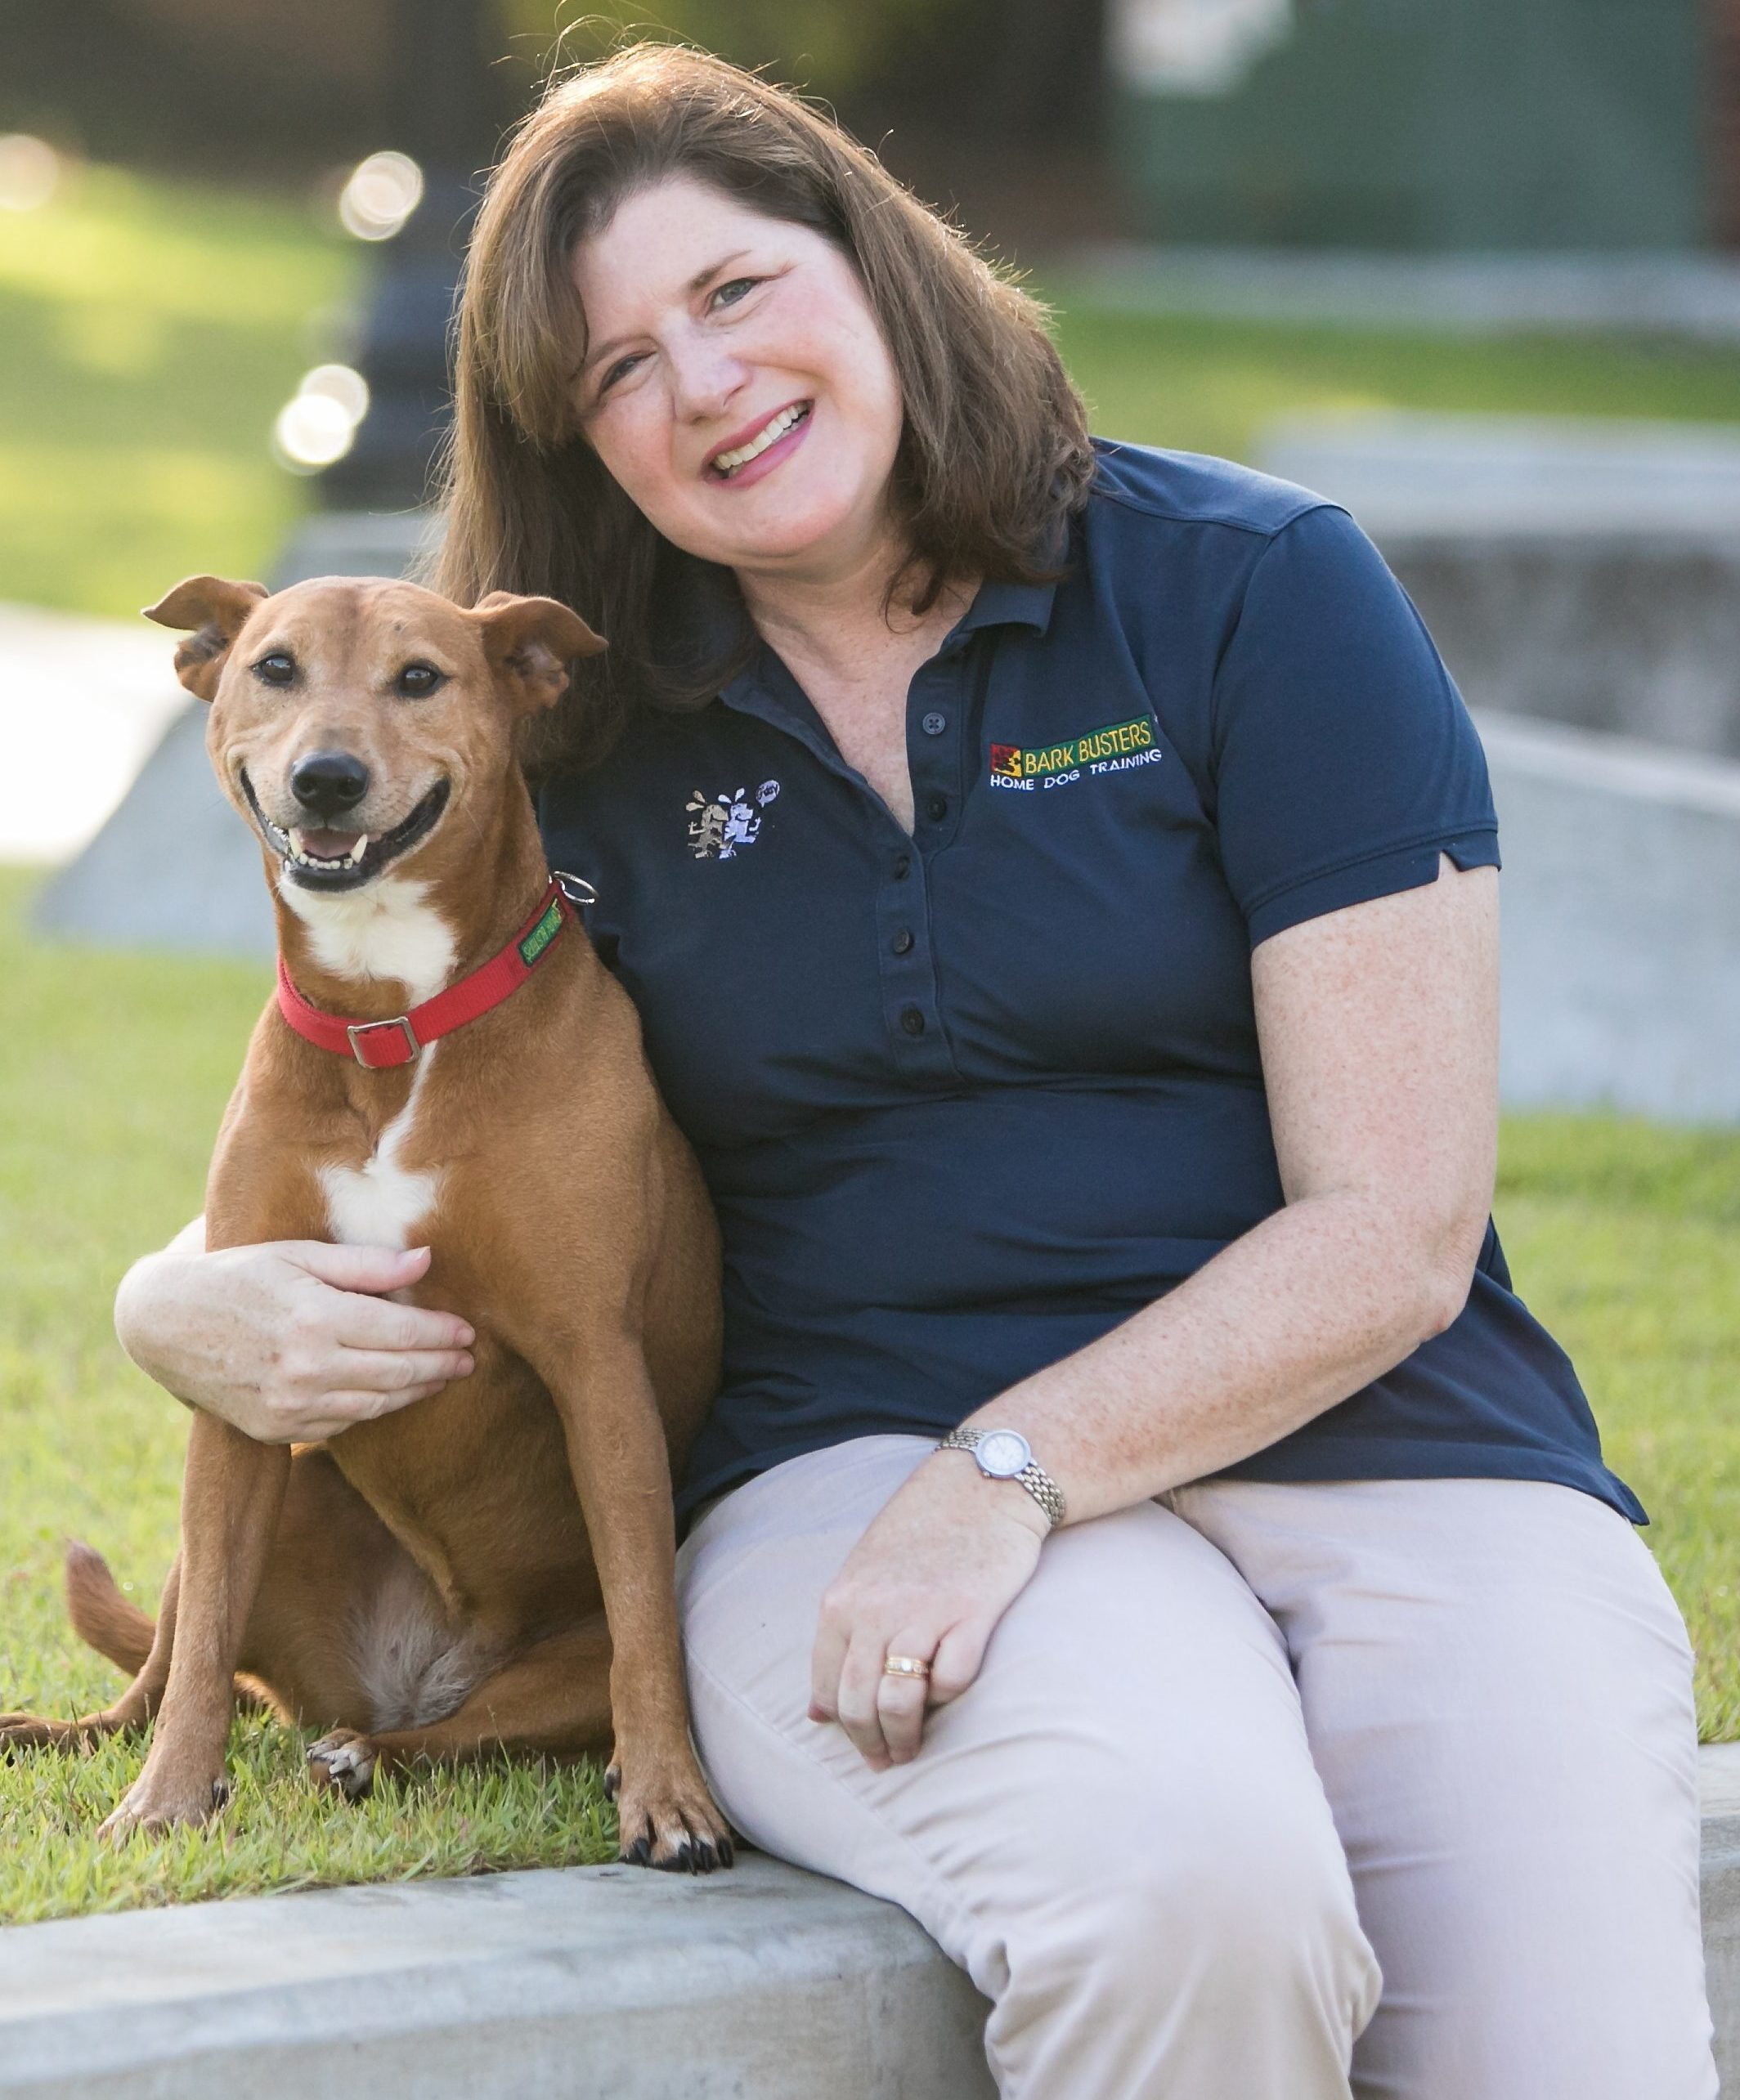 Bark Busters In Home Dog Training in Tallahassee, FLDog Training